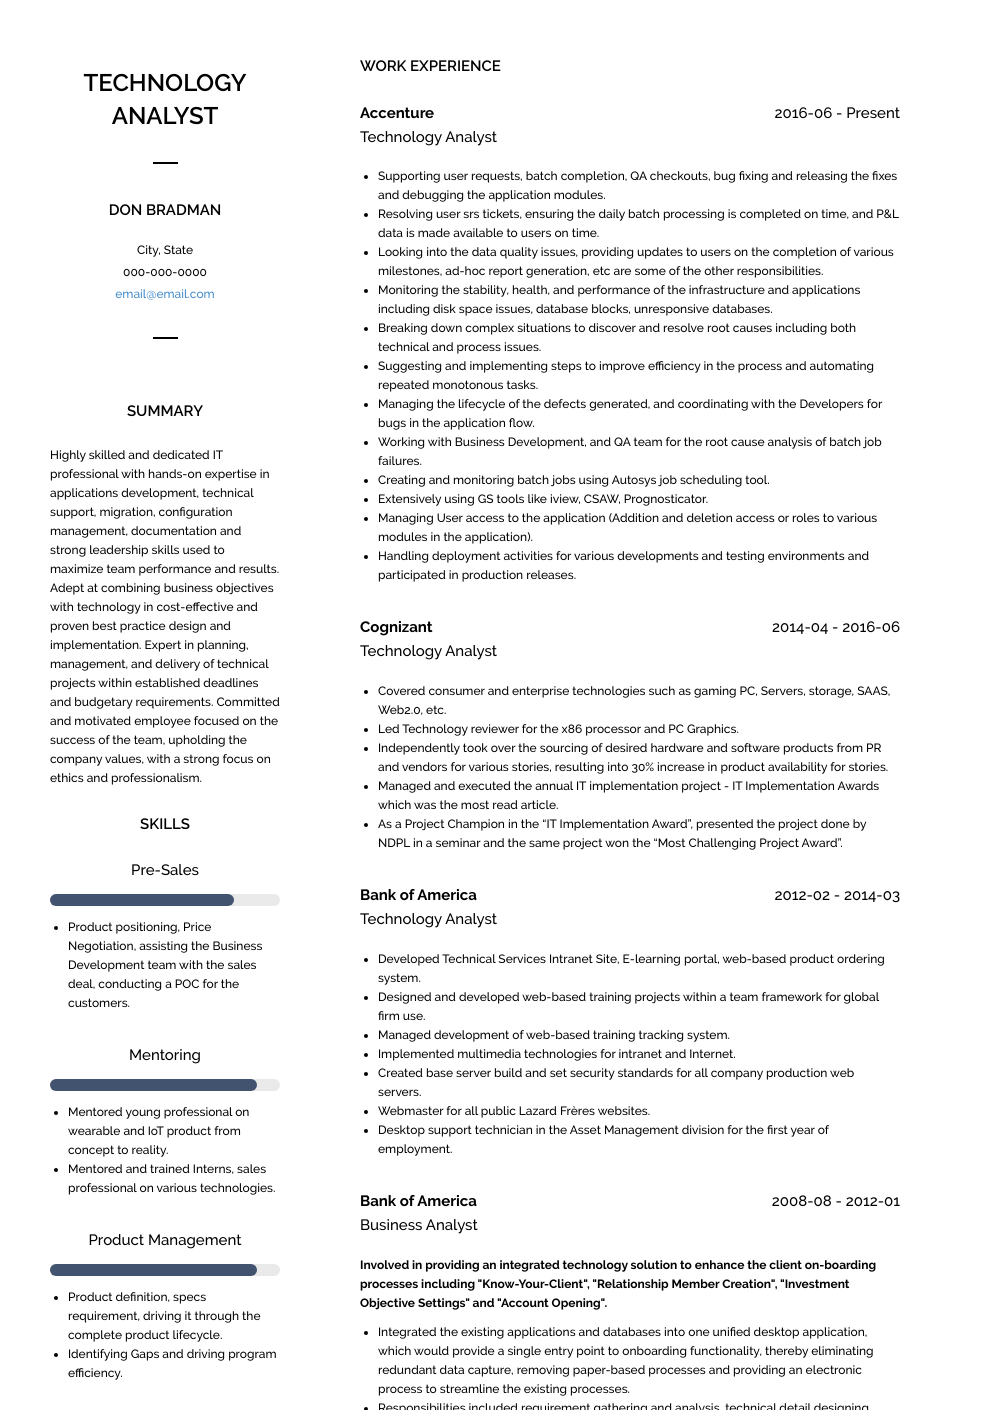 Technology Analyst Resume Samples Amp Templates Visualcv